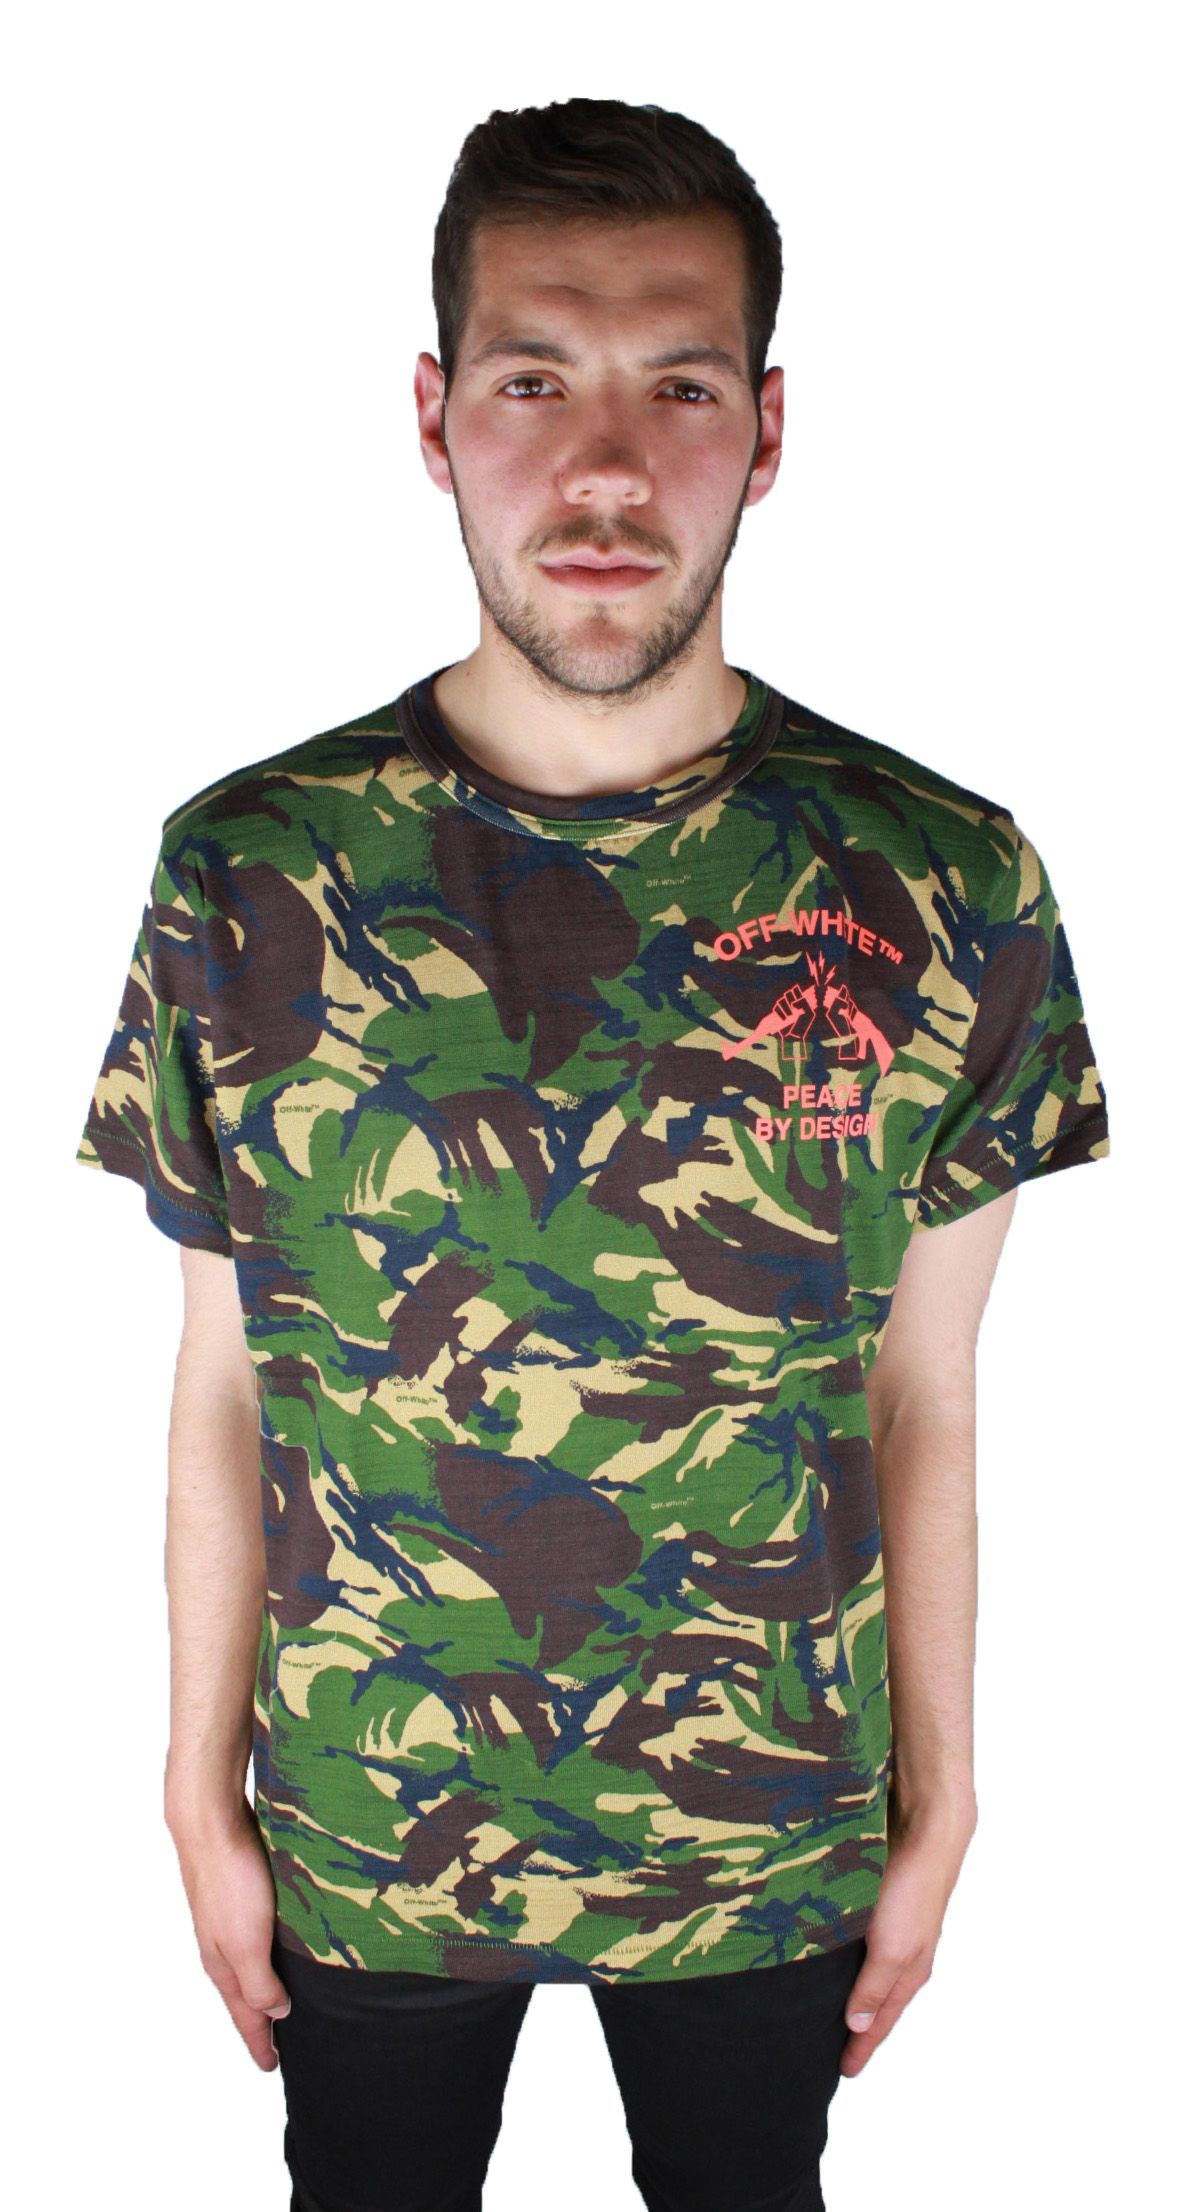 Off-White Camouflage Tee OMAA002 S17411143 9919 T-Shirt